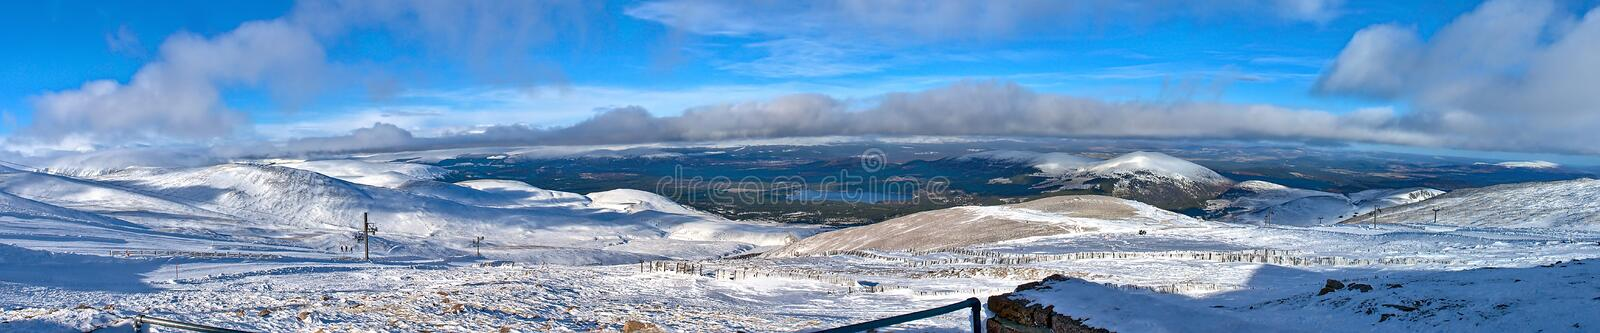 Cairngorm mountains panoramic view in winter royalty free stock photography